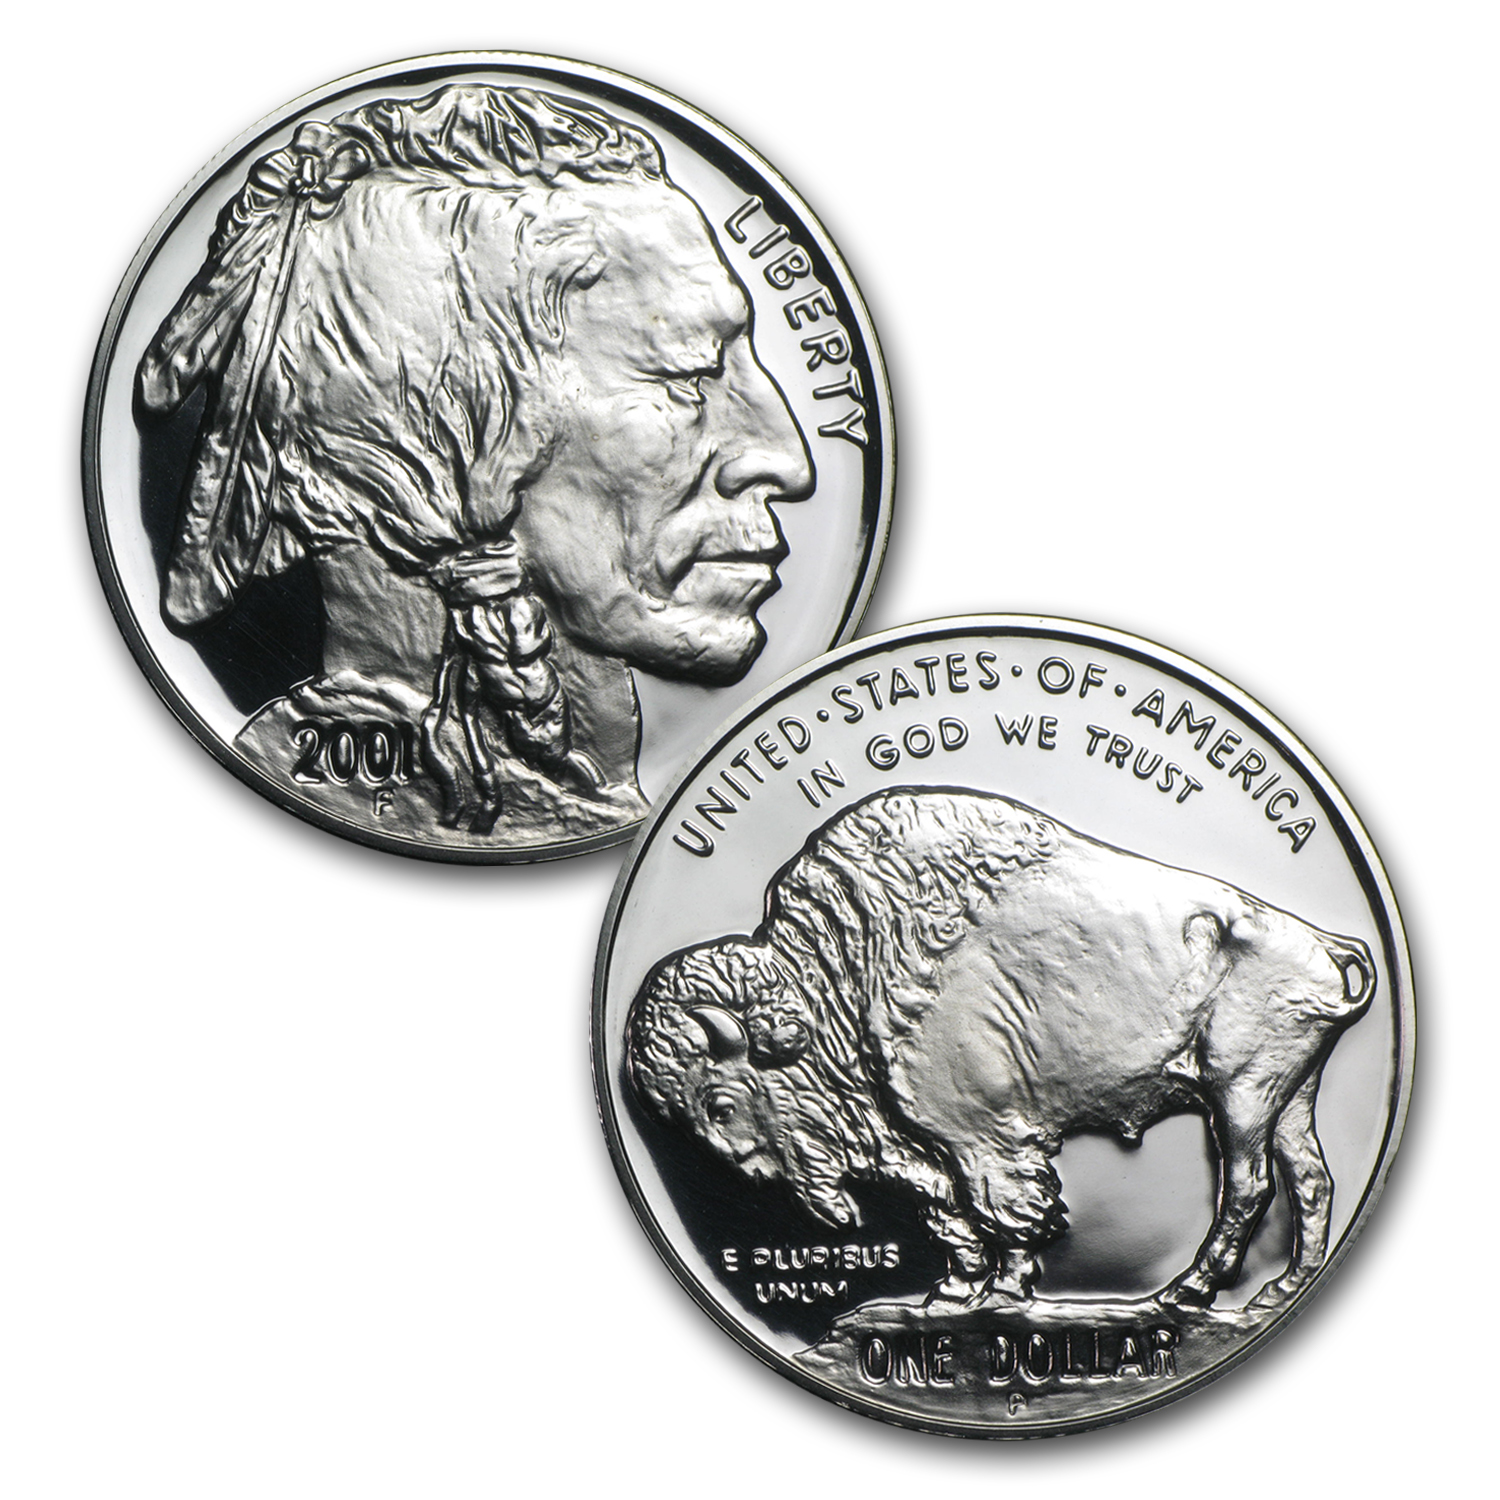 2001 Buffalo 2-Coin Set BU & Proof